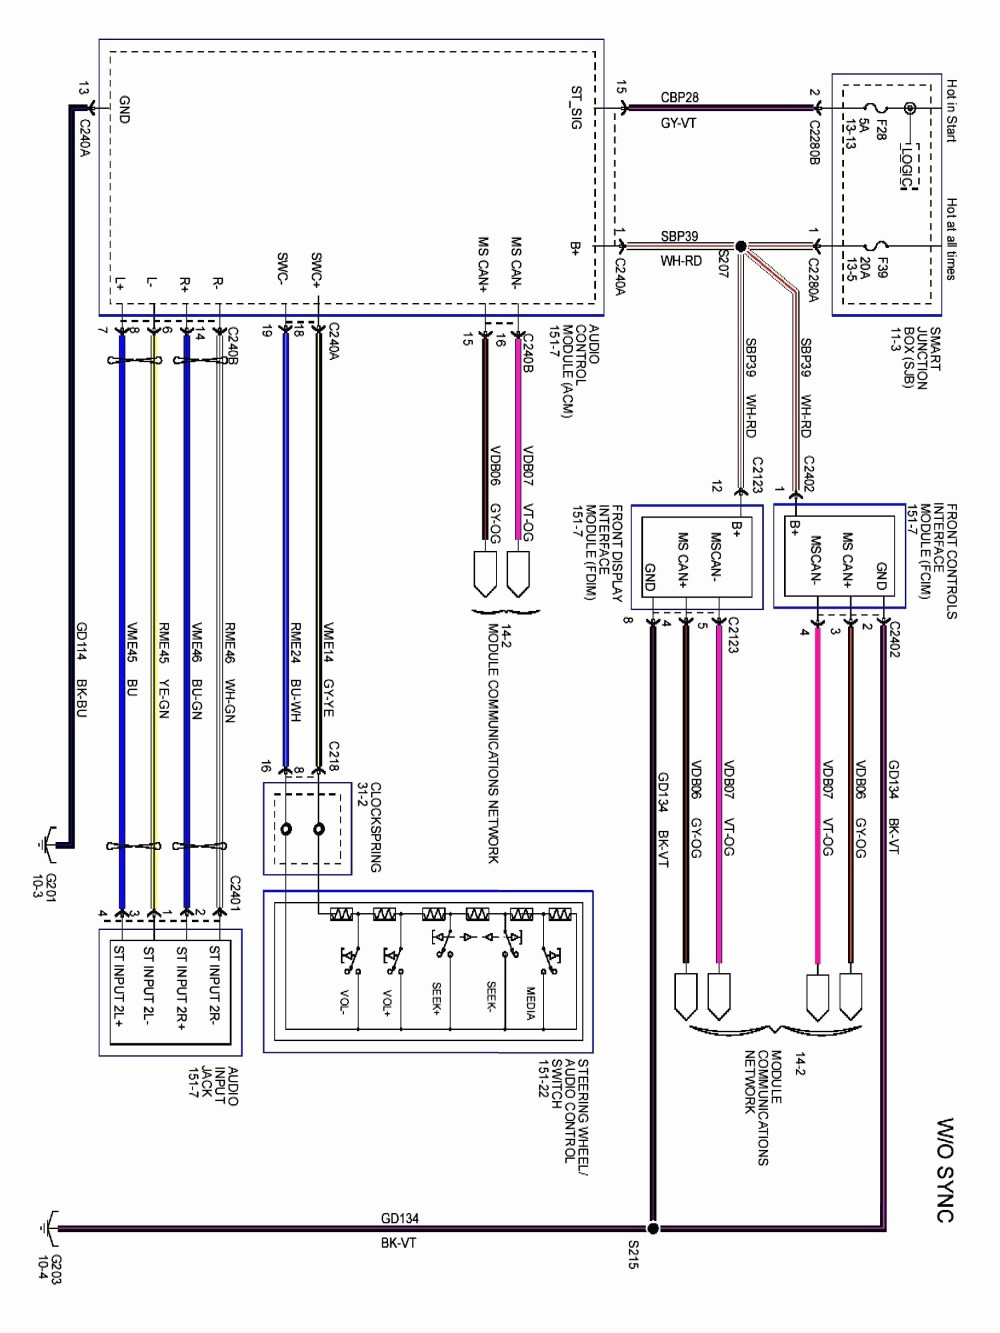 medium resolution of car audio diagrams and charts car stereo wiring diagram image of car audio diagrams and charts